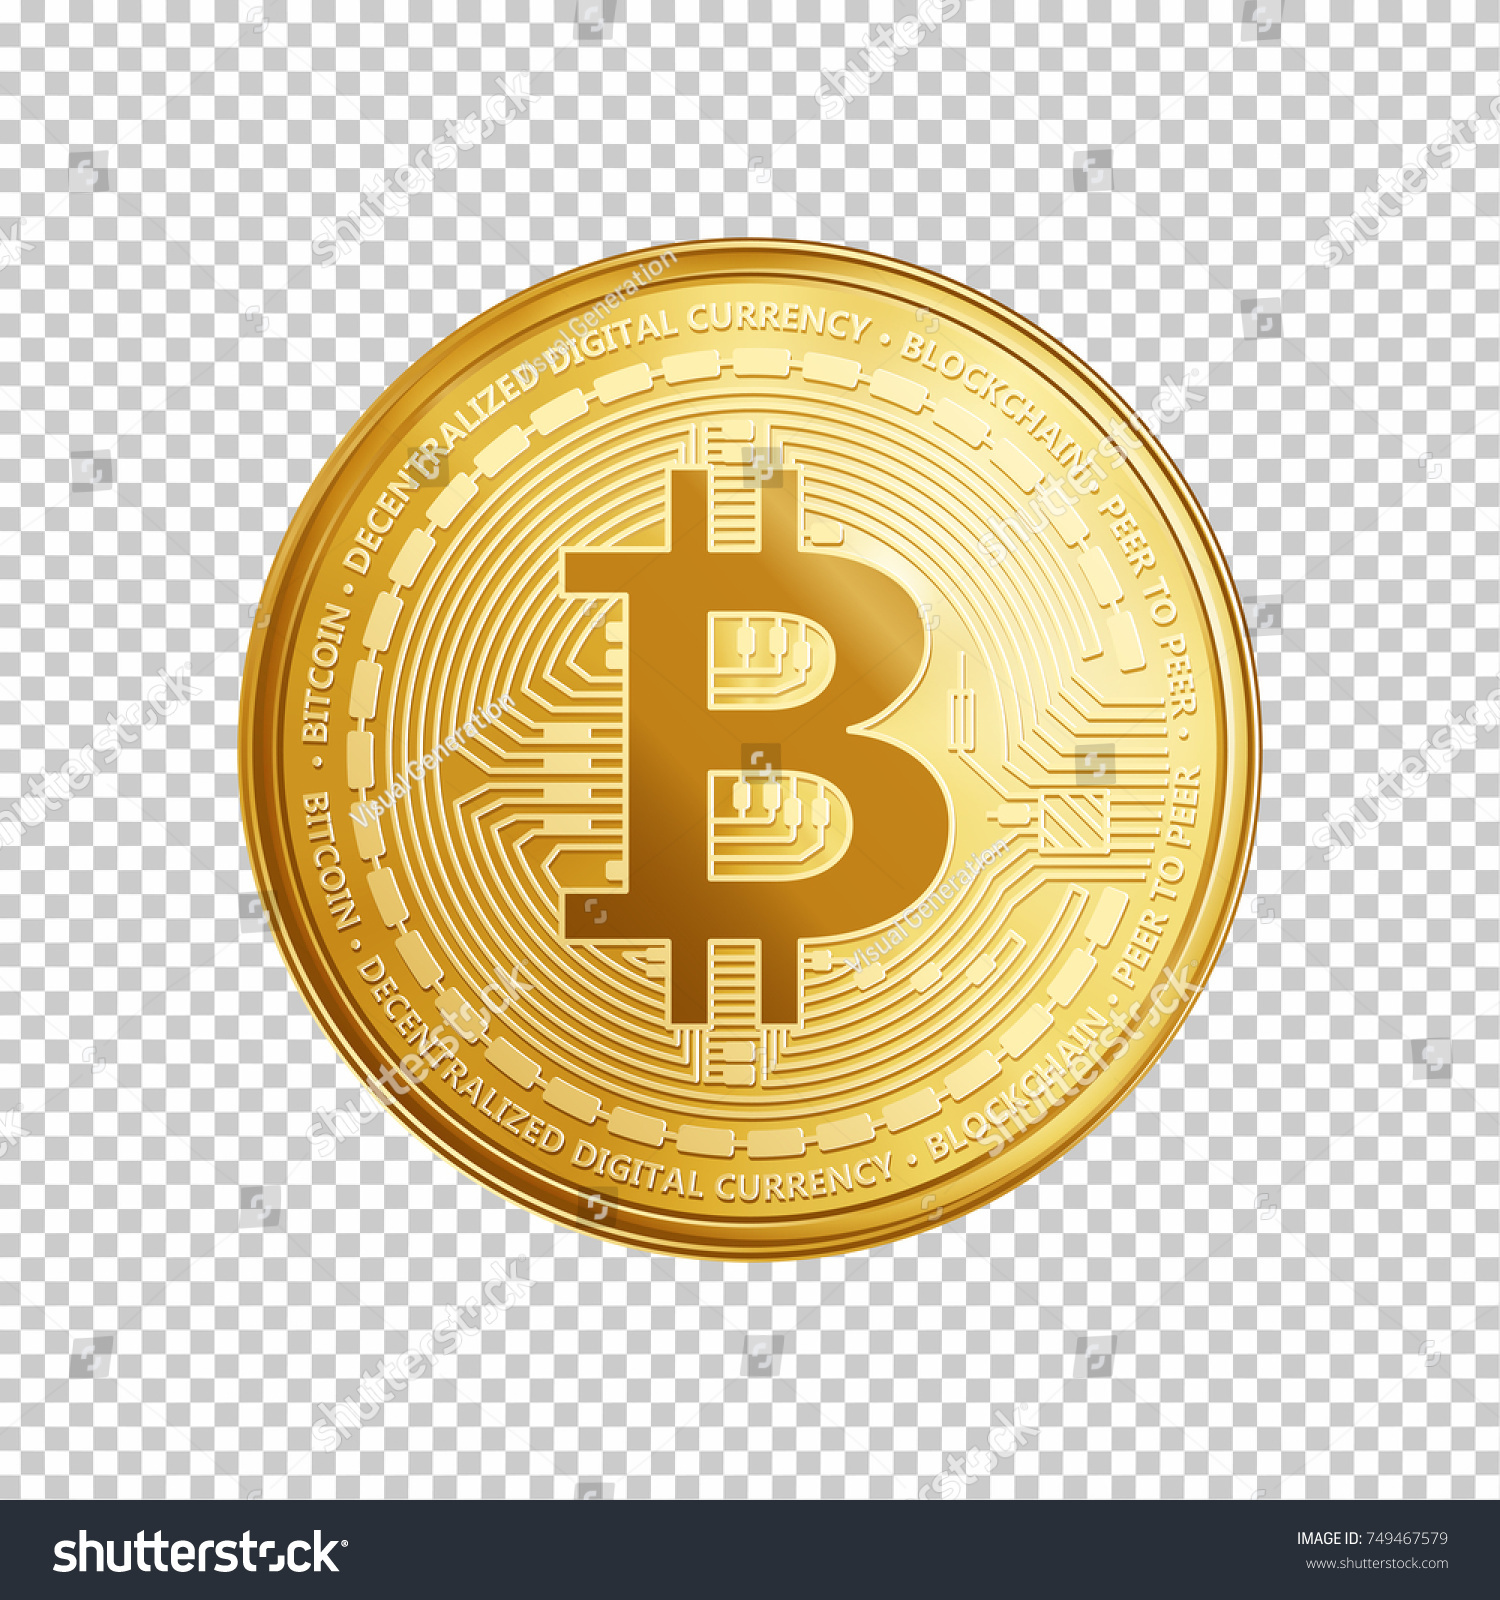 Golden Bitcoin Coin Crypto Currency Symbol Isolated On Transparent Background Realistic